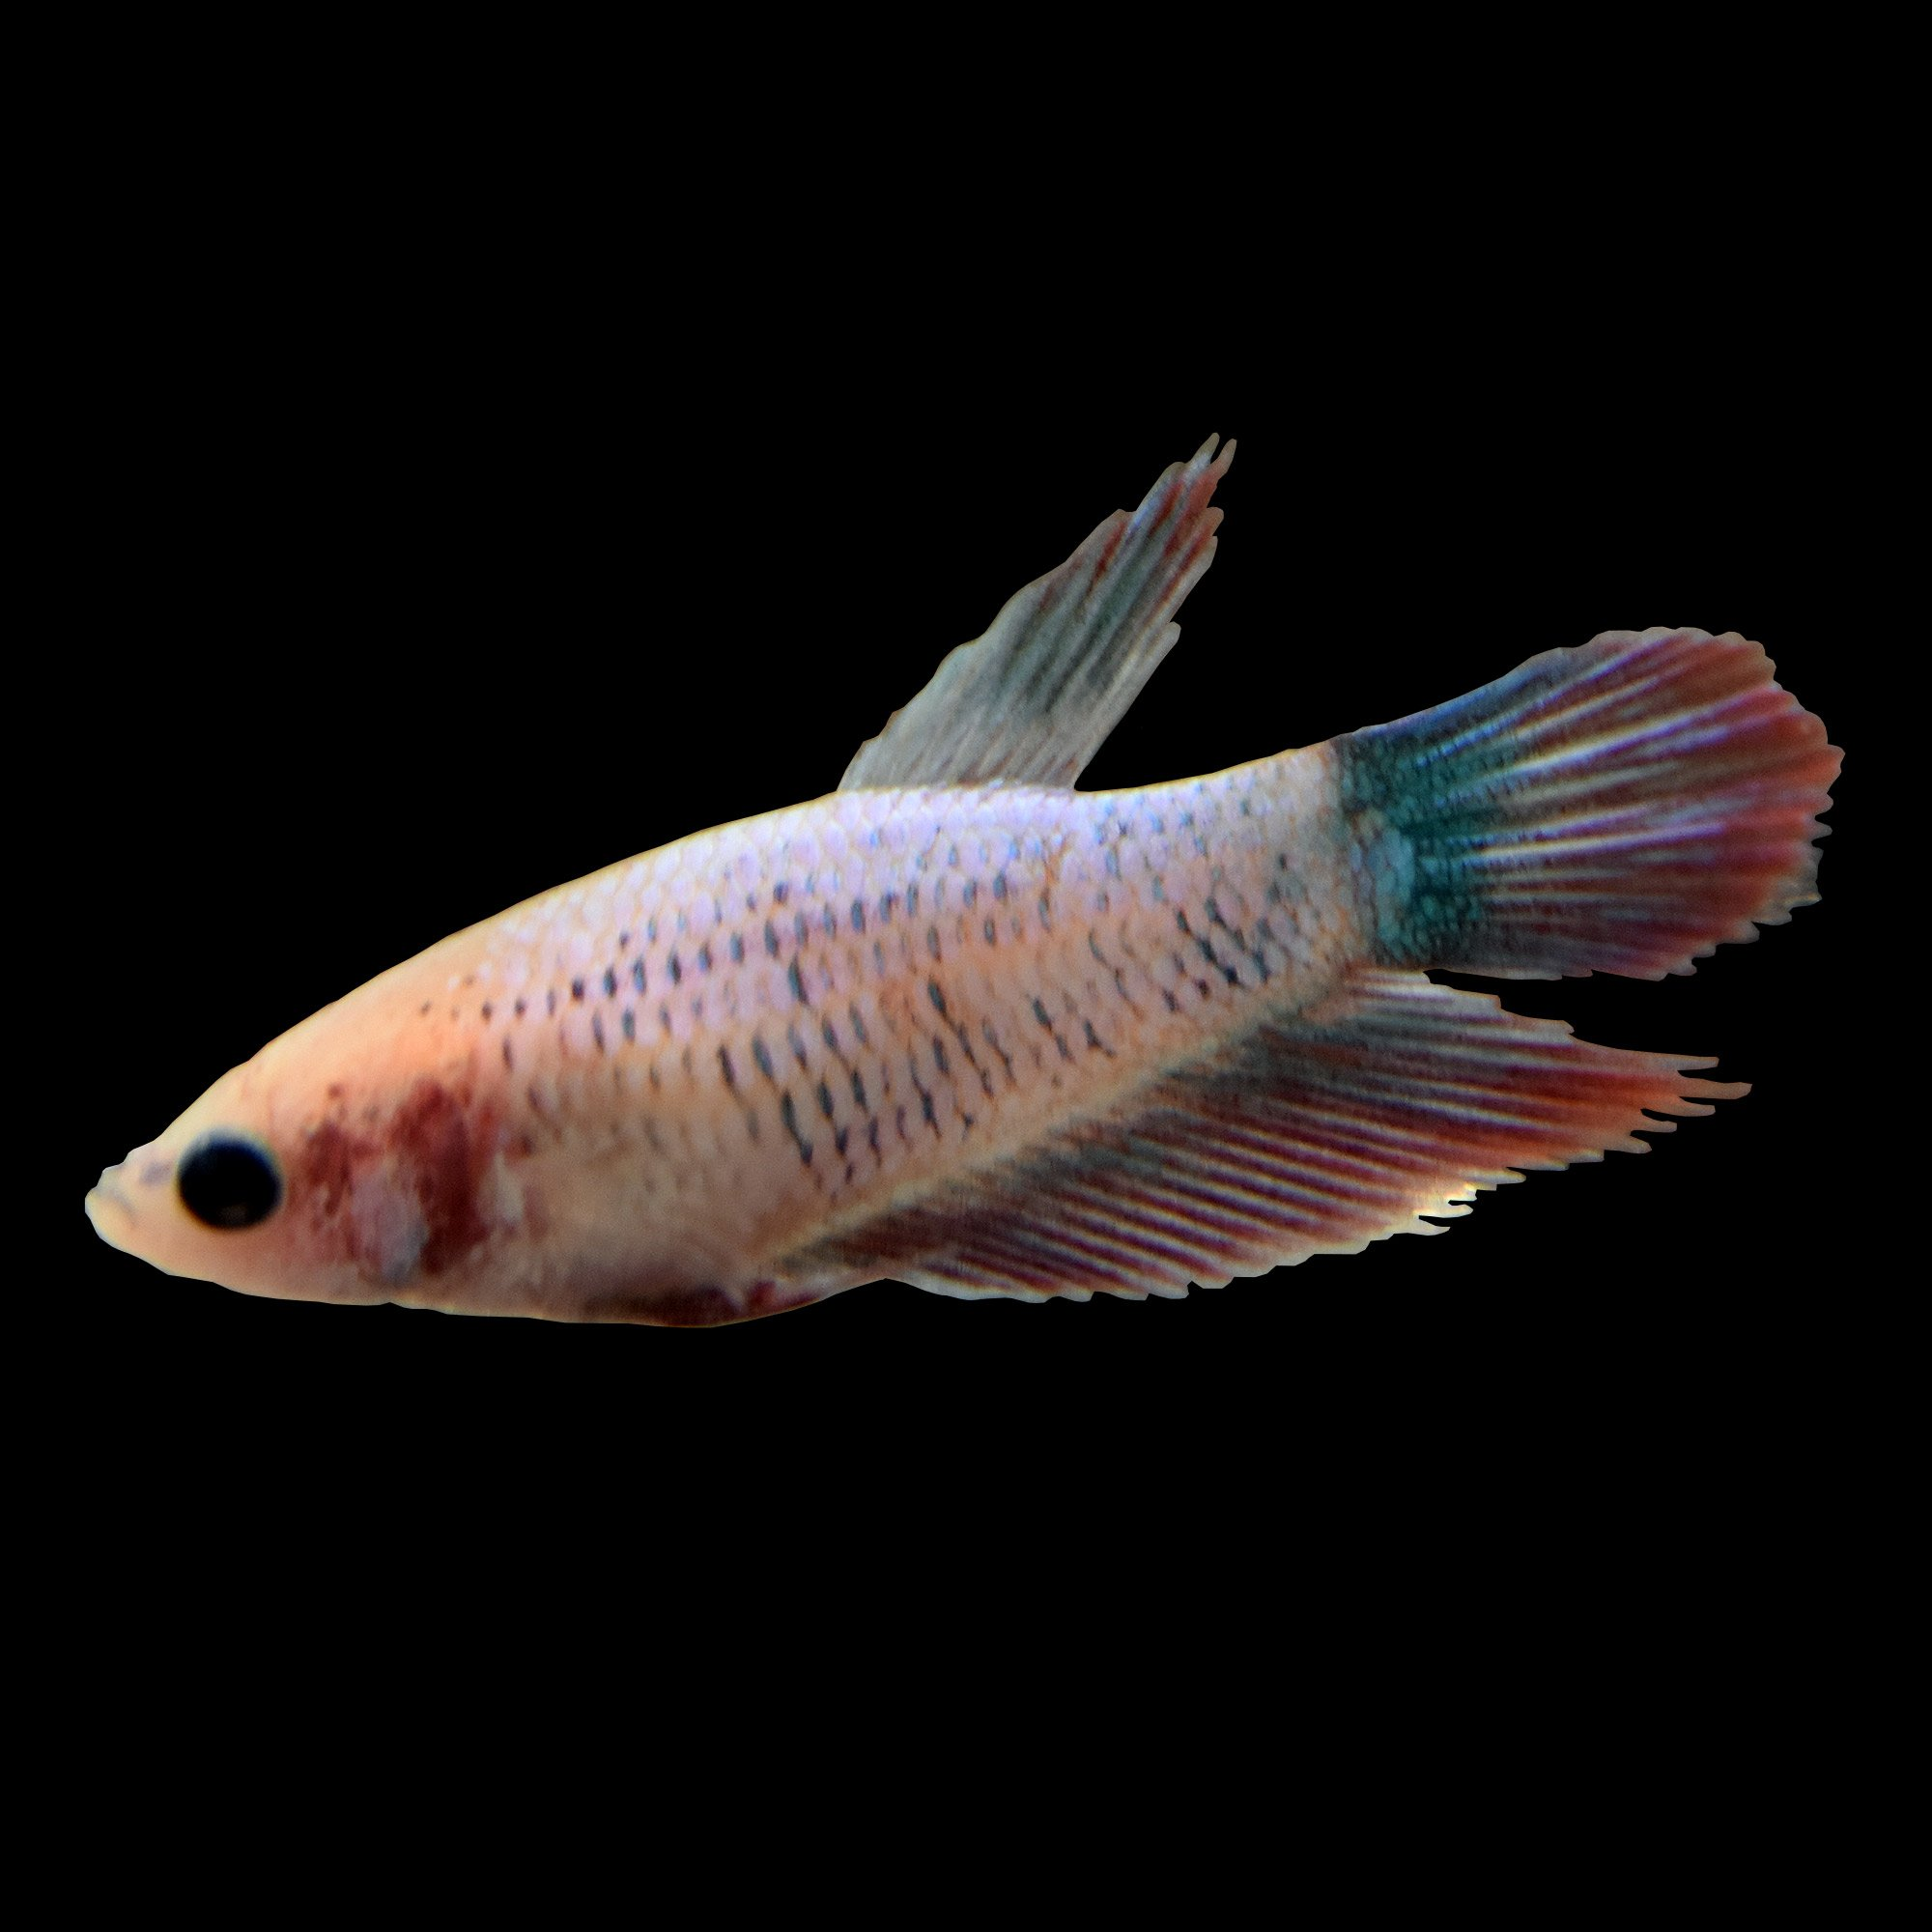 Female veiltail betta fish siamese fighting fish extra for Types of betta fish petco